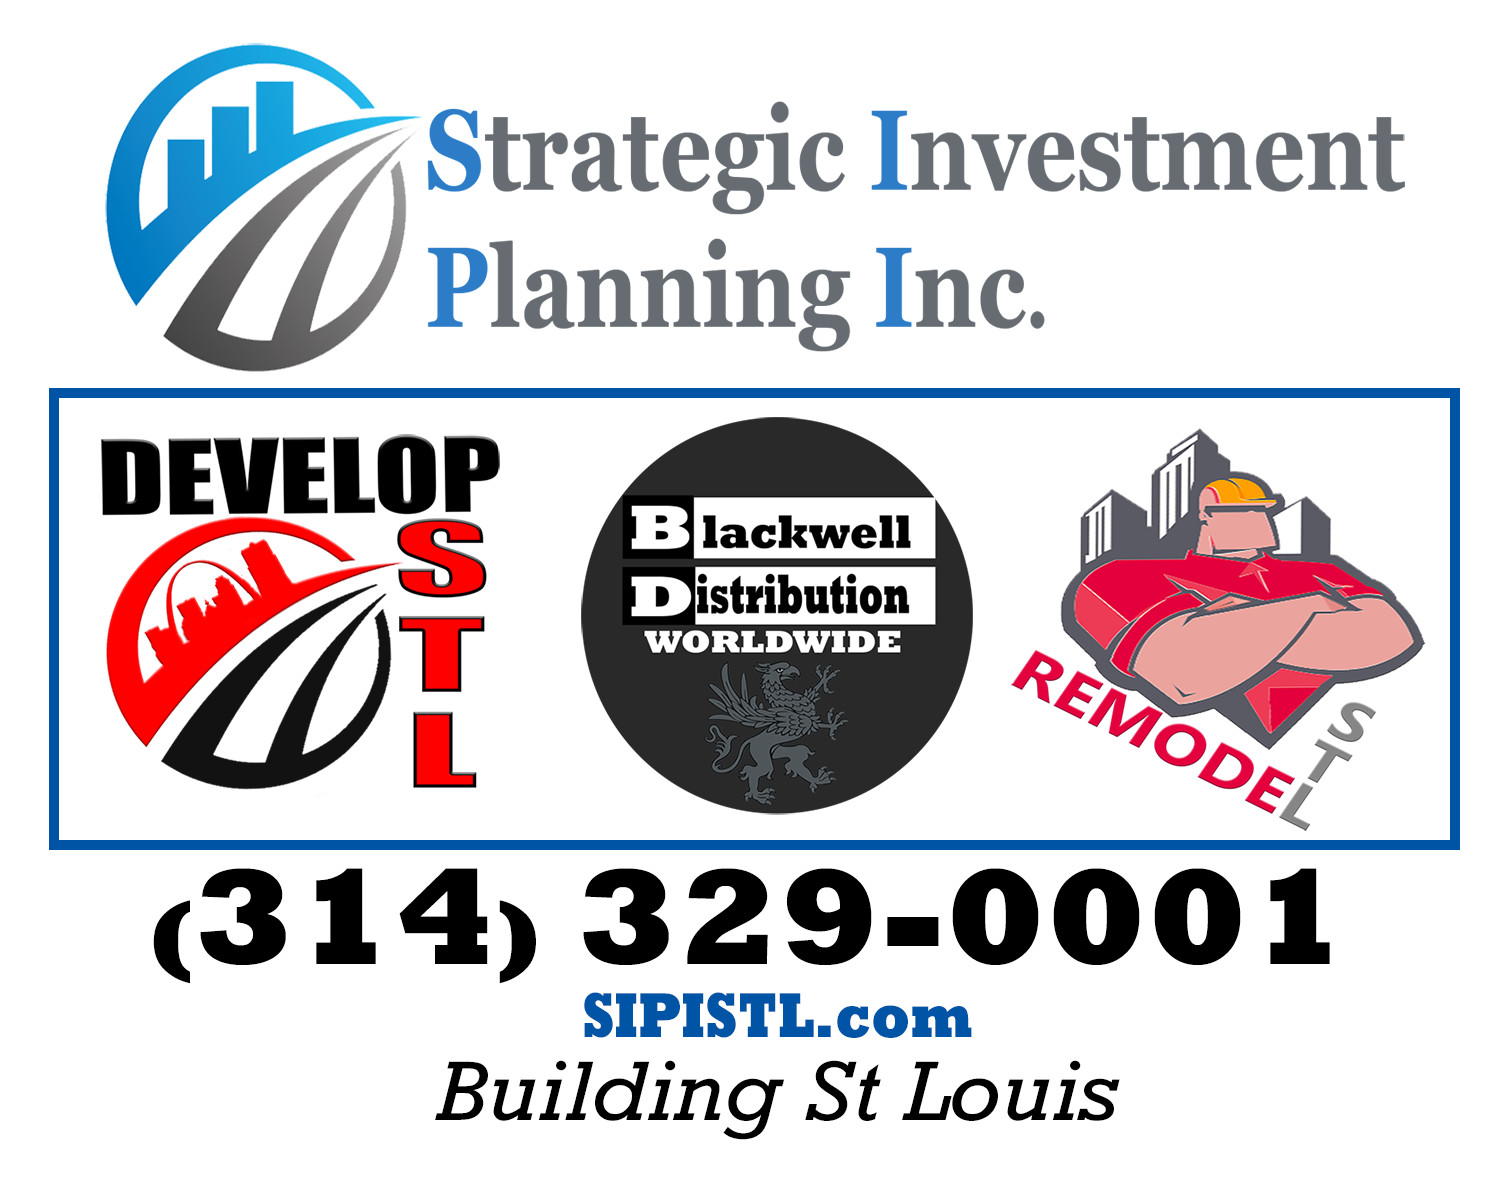 A Strategic Investment Planning Inc Company